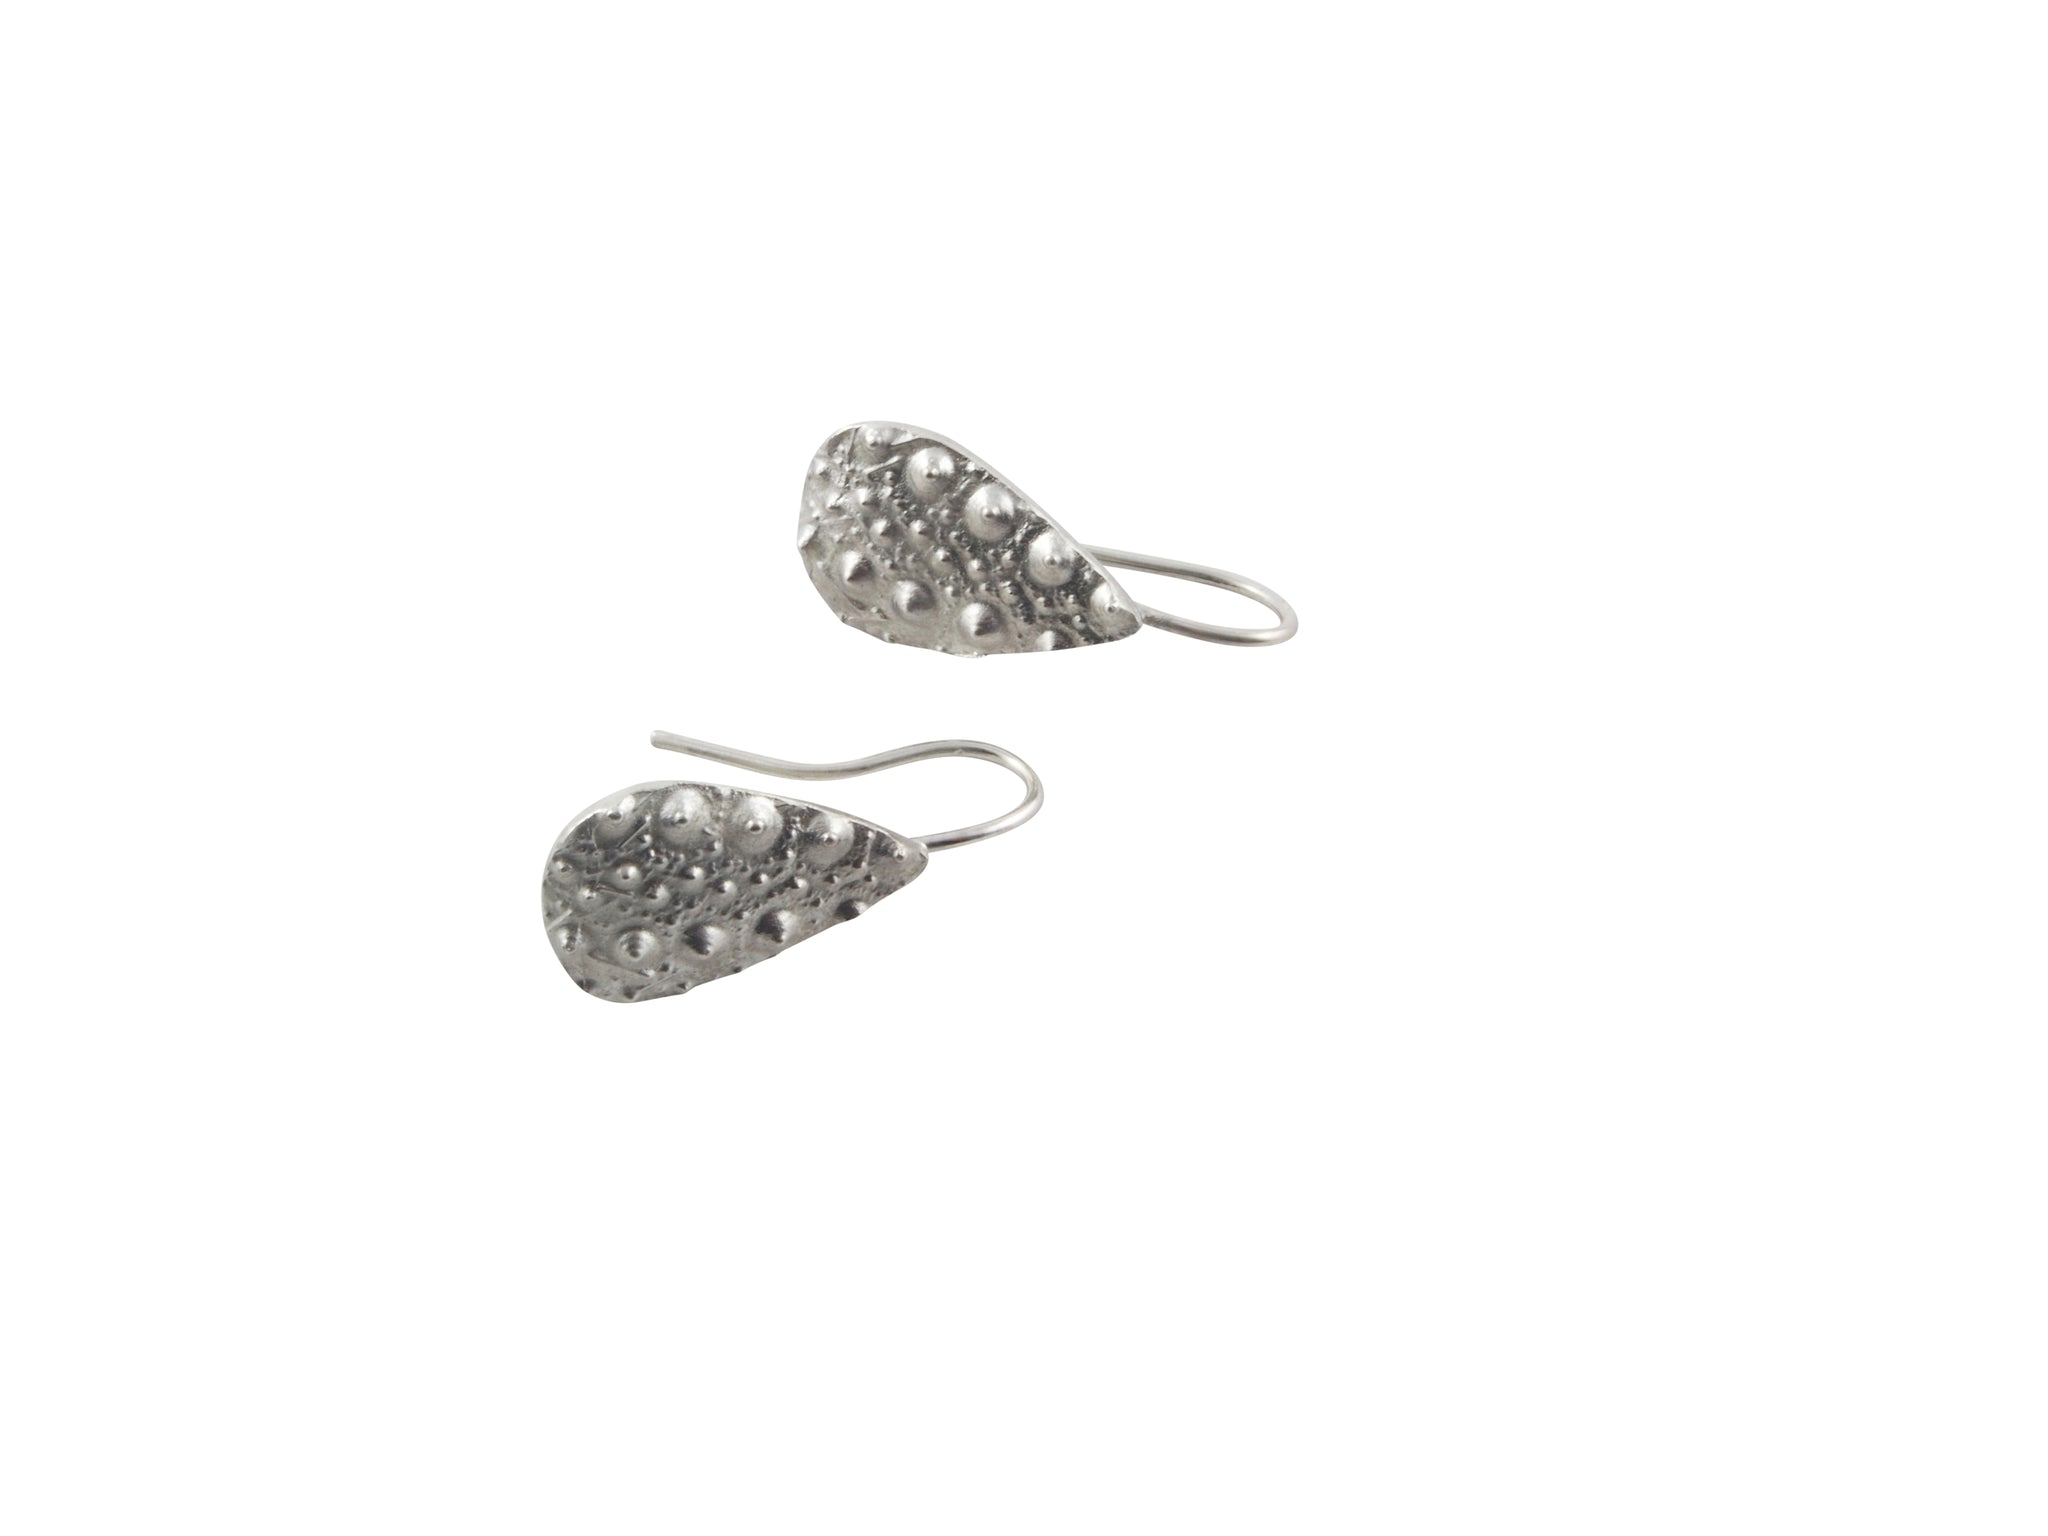 sea urchin earrings - teardrop